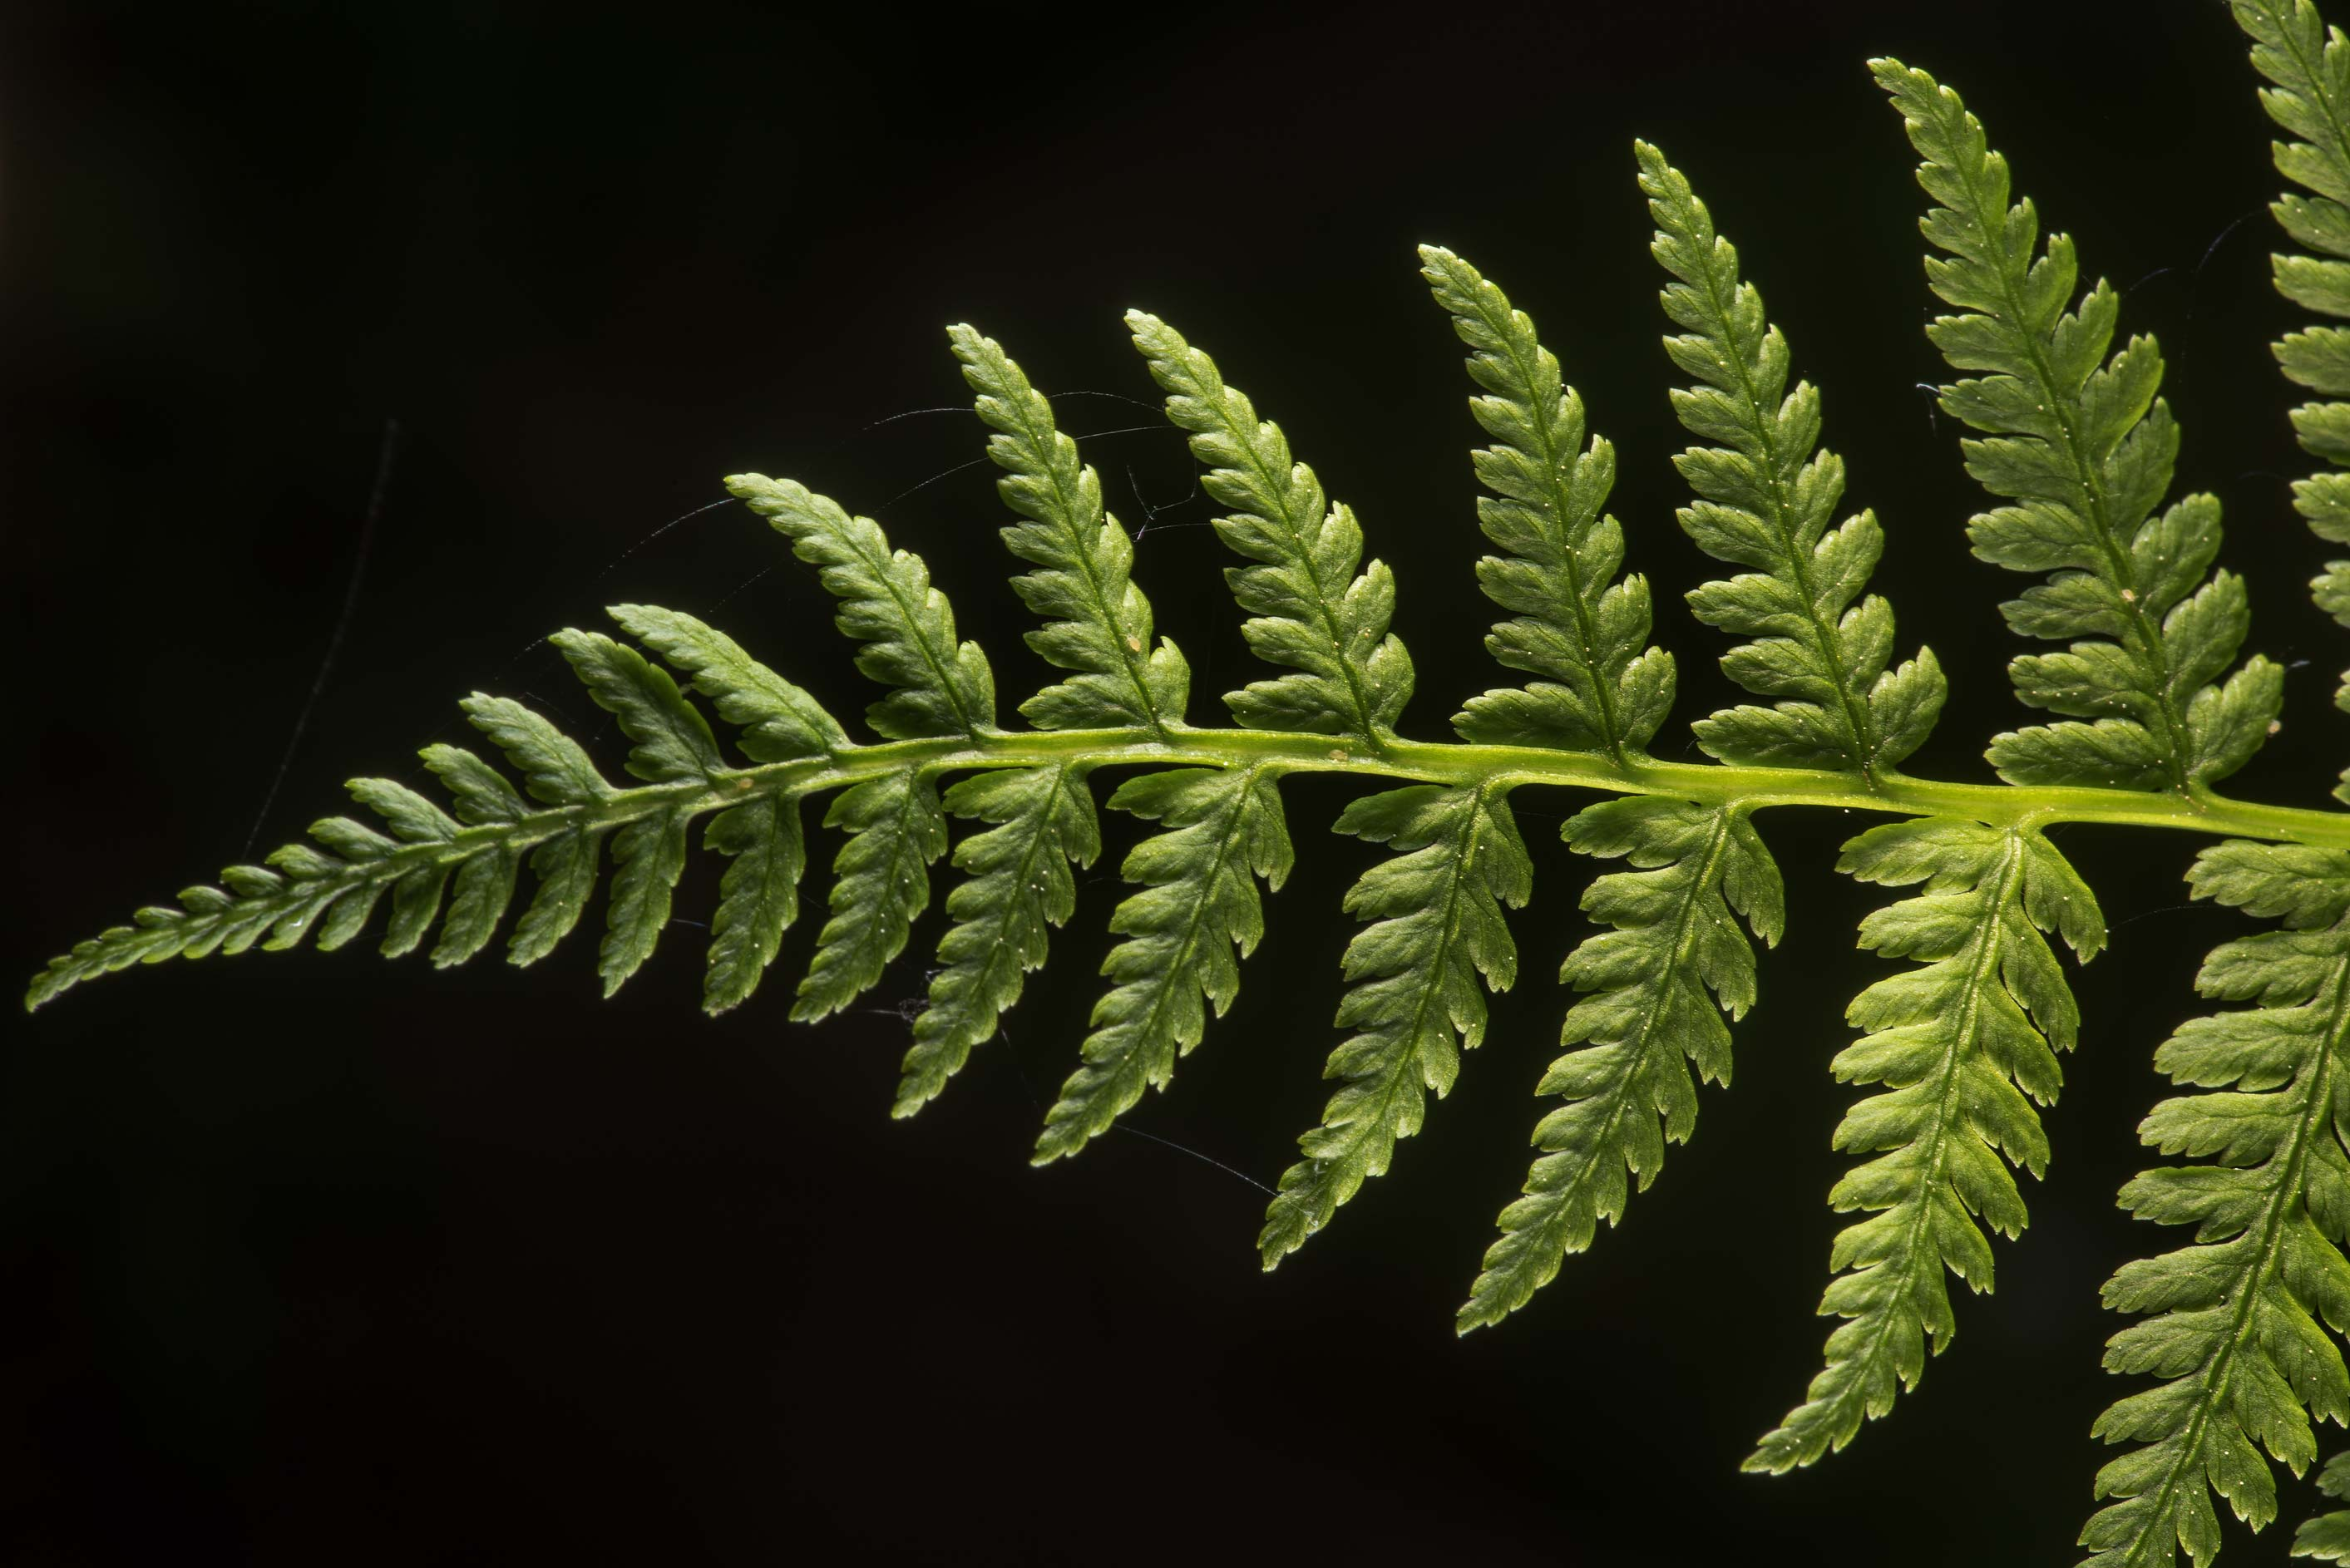 Fern leaf in Sobstvennaya Dacha Park. Old Peterhof, west from St.Petersburg, Russia